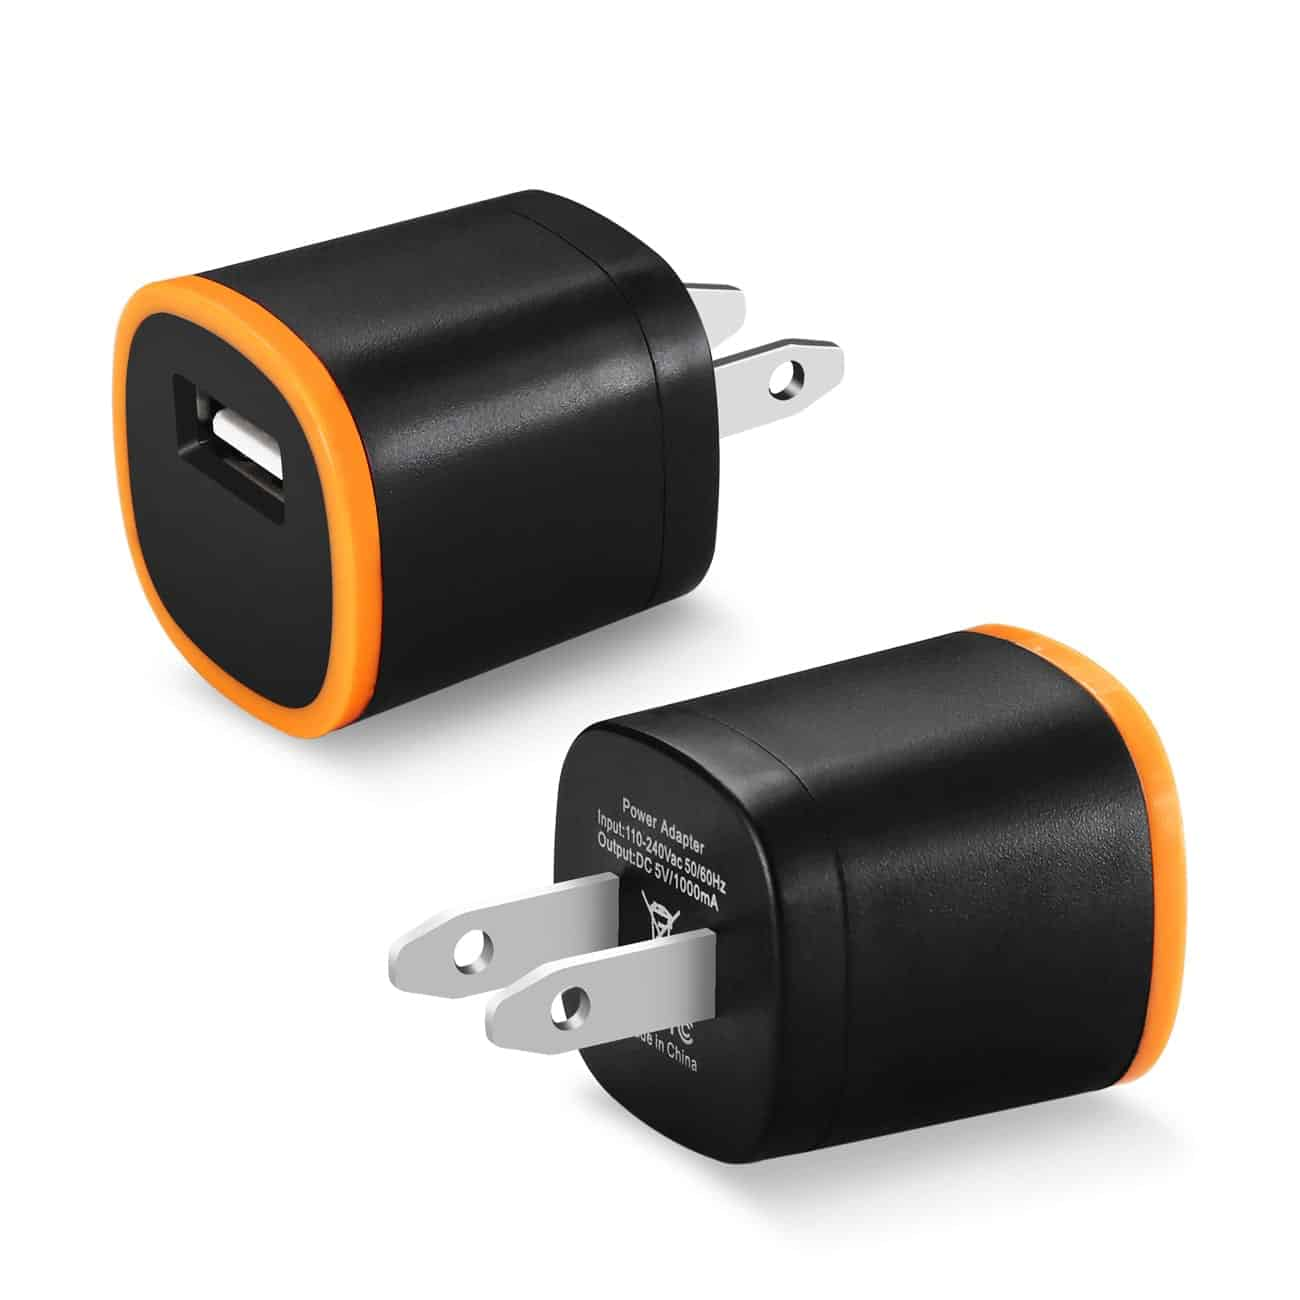 1 AMP DUAL COLOR PORTABLE USB TRAVEL ADAPTER CHARGER IN ORANGE BLACK